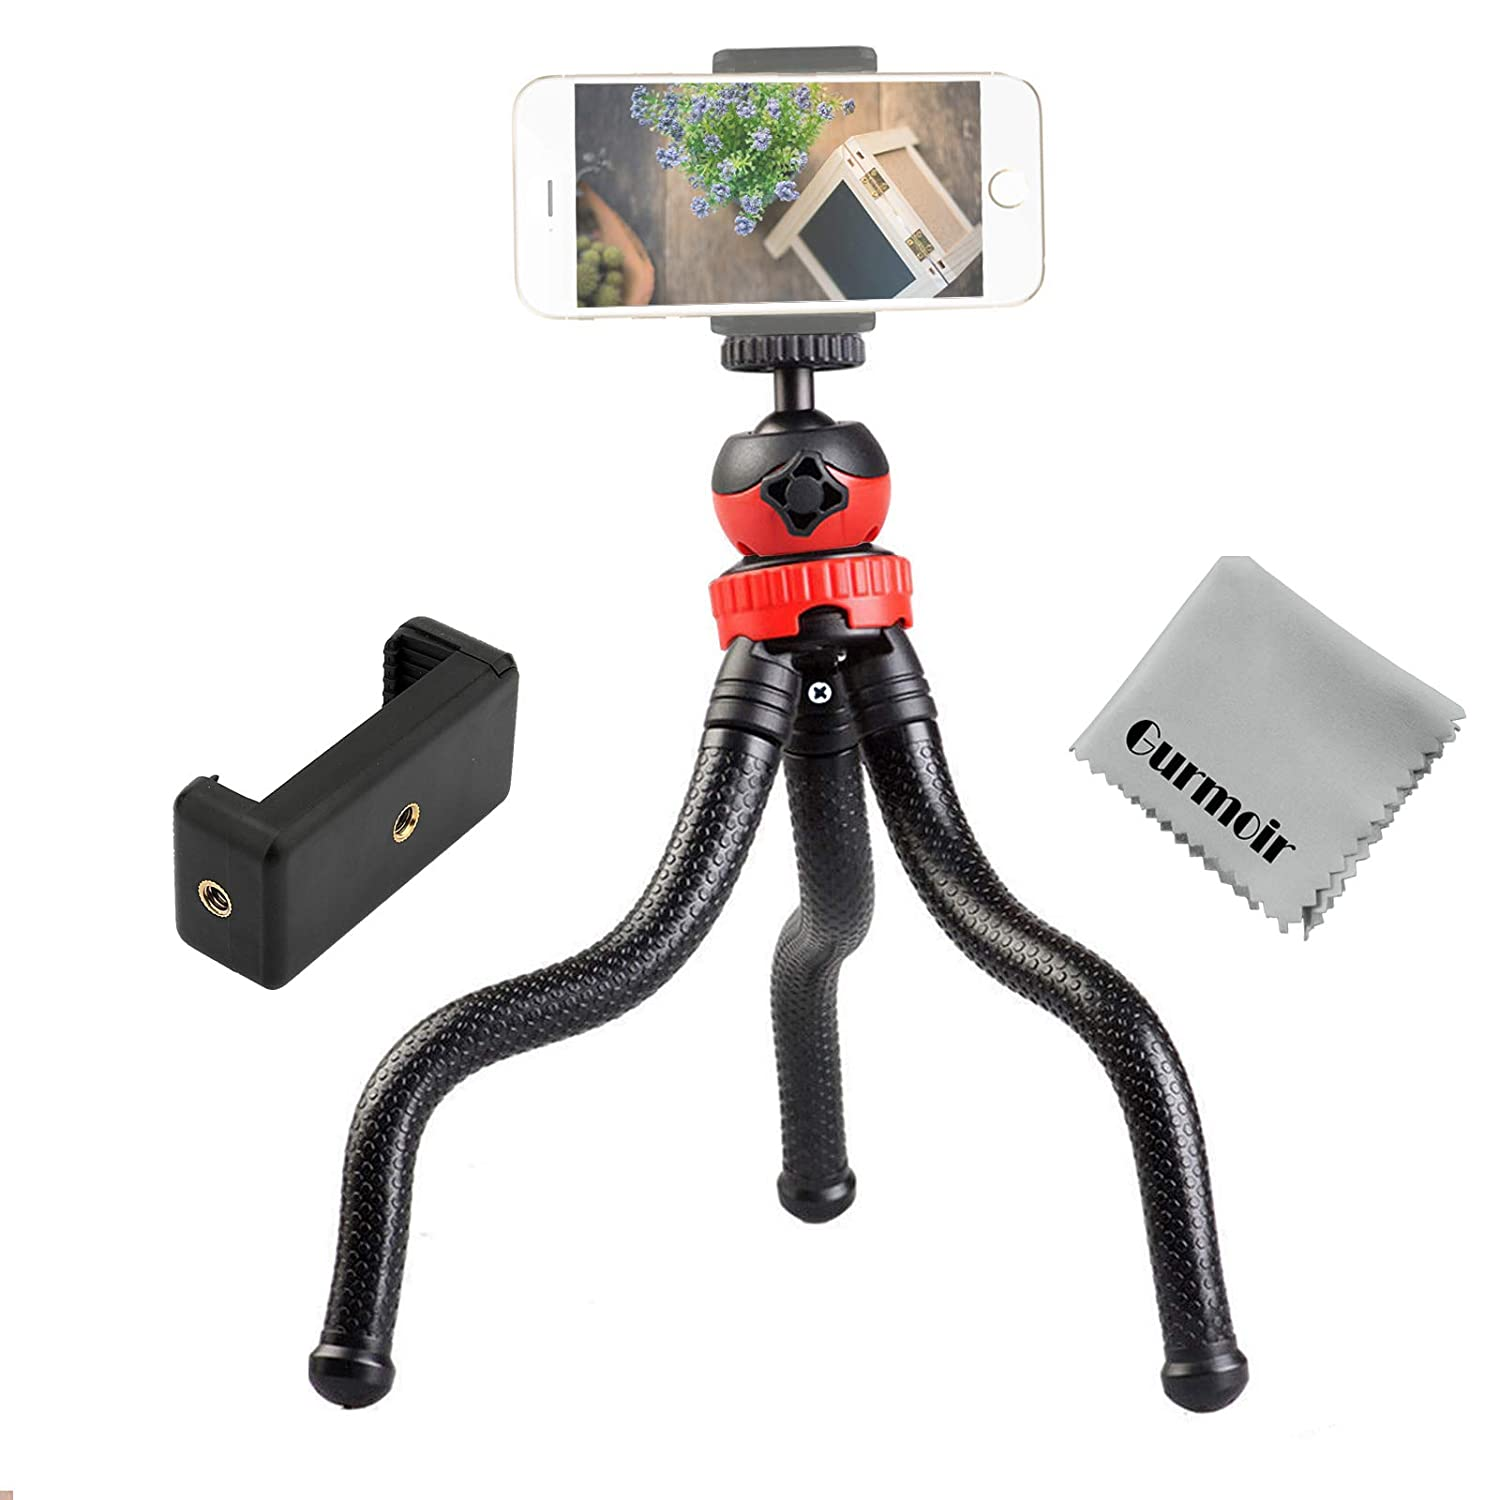 Flexible Tripod For iPhone Series, Digital Cam